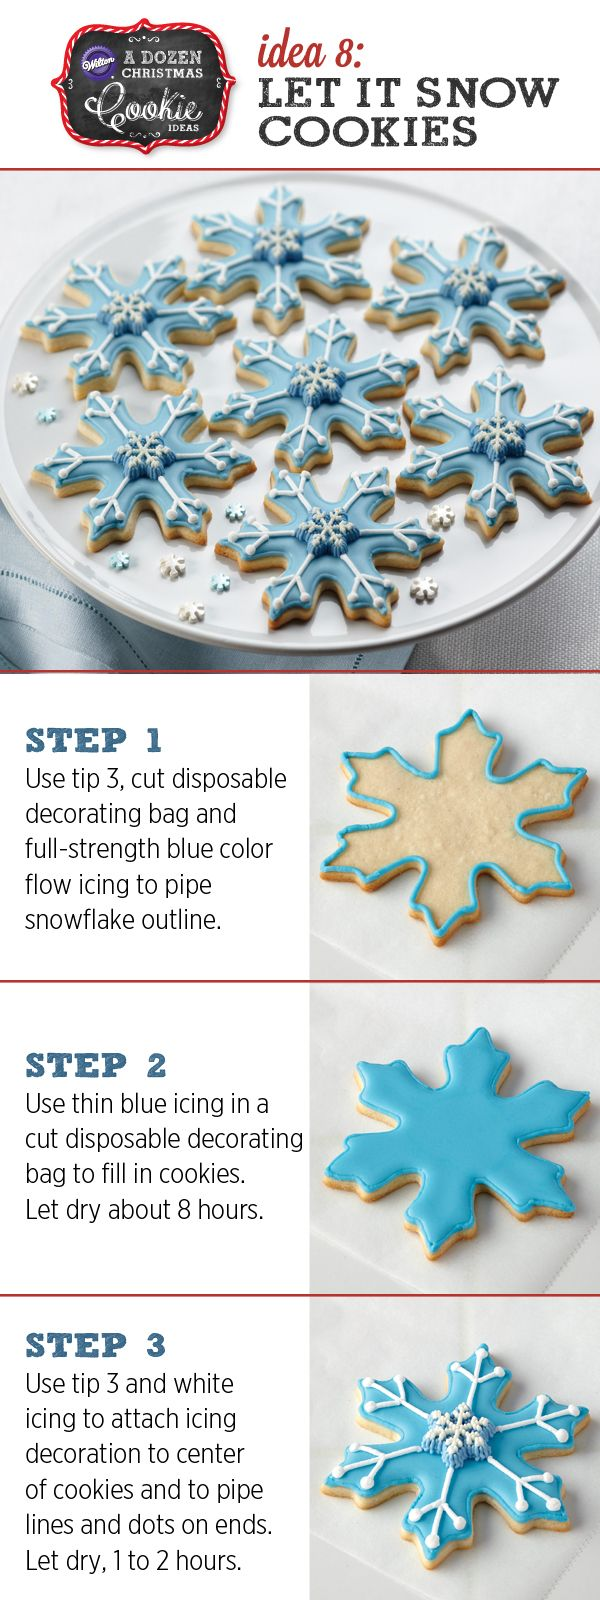 We're loving these understated Christmas Cookies: Let It Snowflake Cookies!